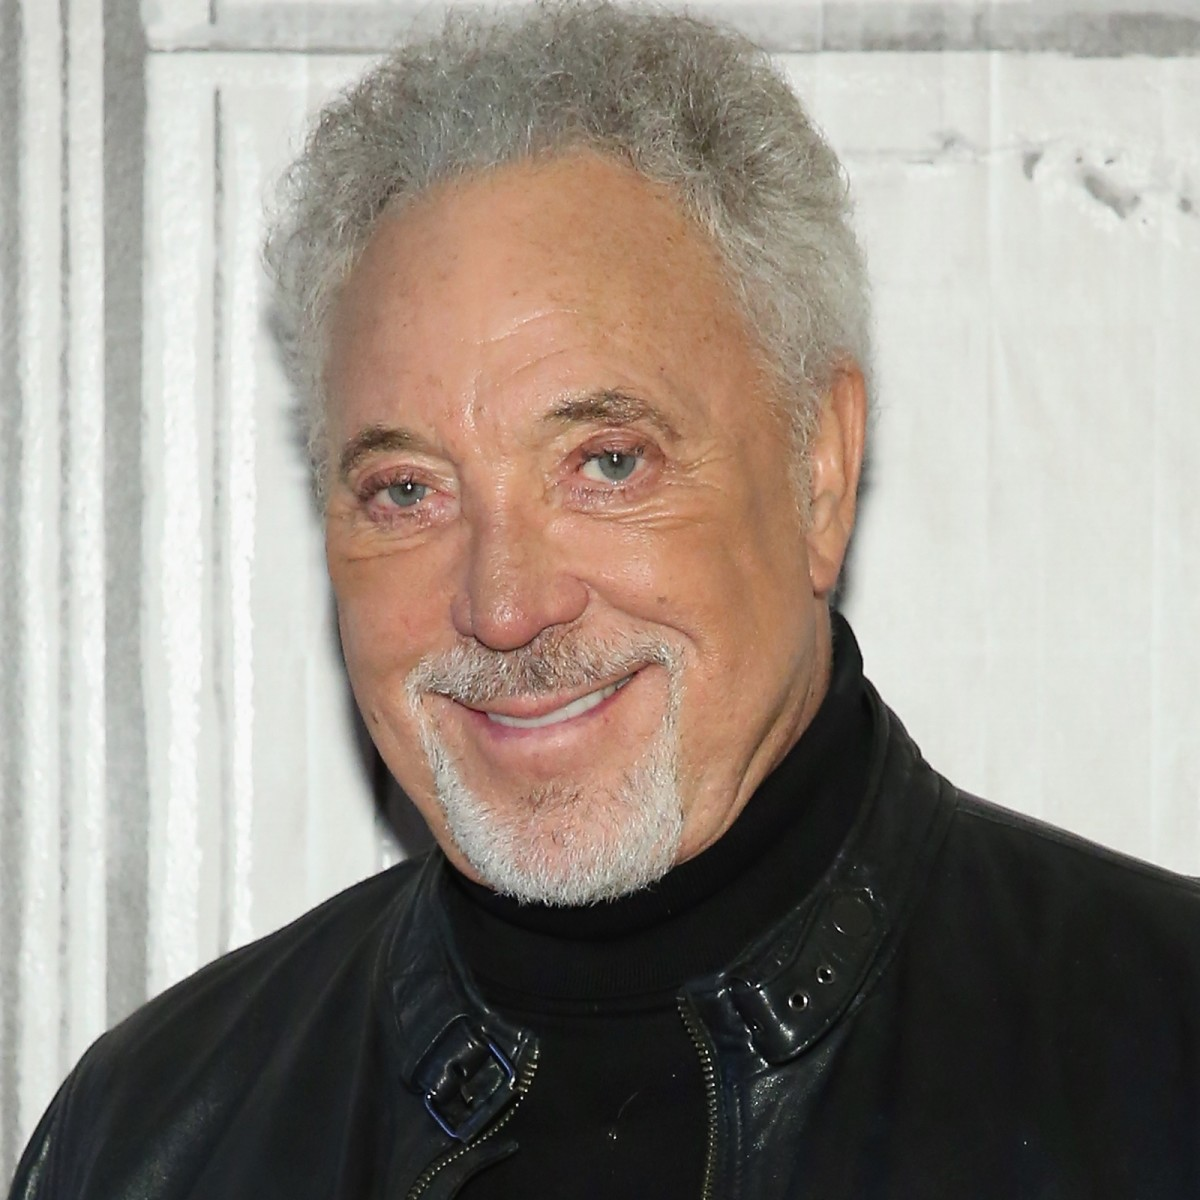 Tom Jones photo via Getty Images